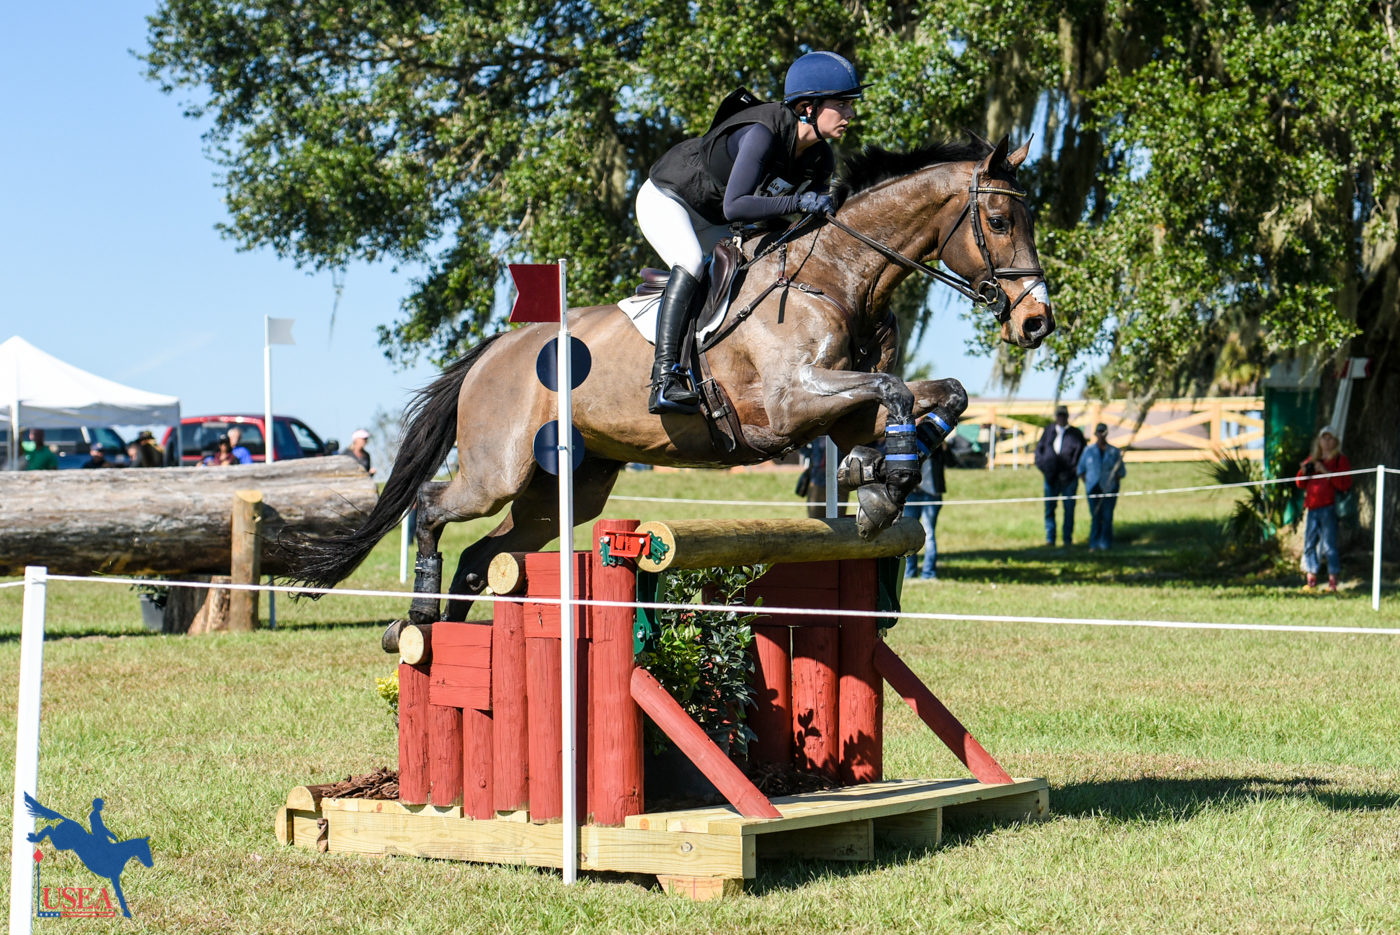 CCI3* - 5th - Hallie Coon and Lansdowne